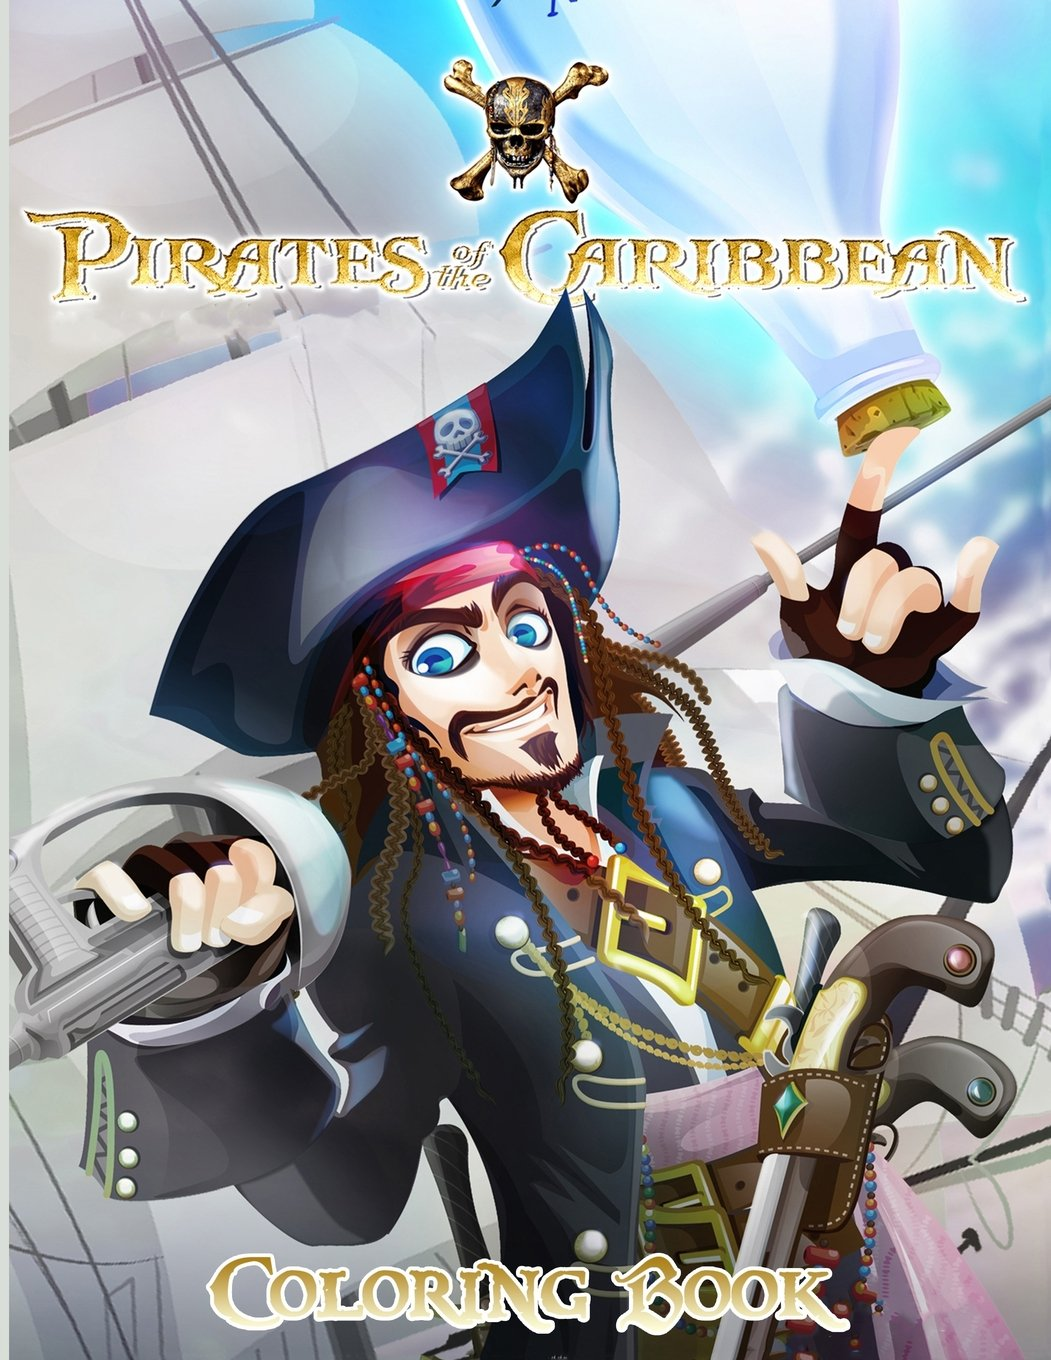 Pirates of the Caribbean: Coloring Book for Kids and Adults, Activity Book, Great Starter Book for Children (Coloring Book for Adults Relaxation and for Kids Ages 4-12)